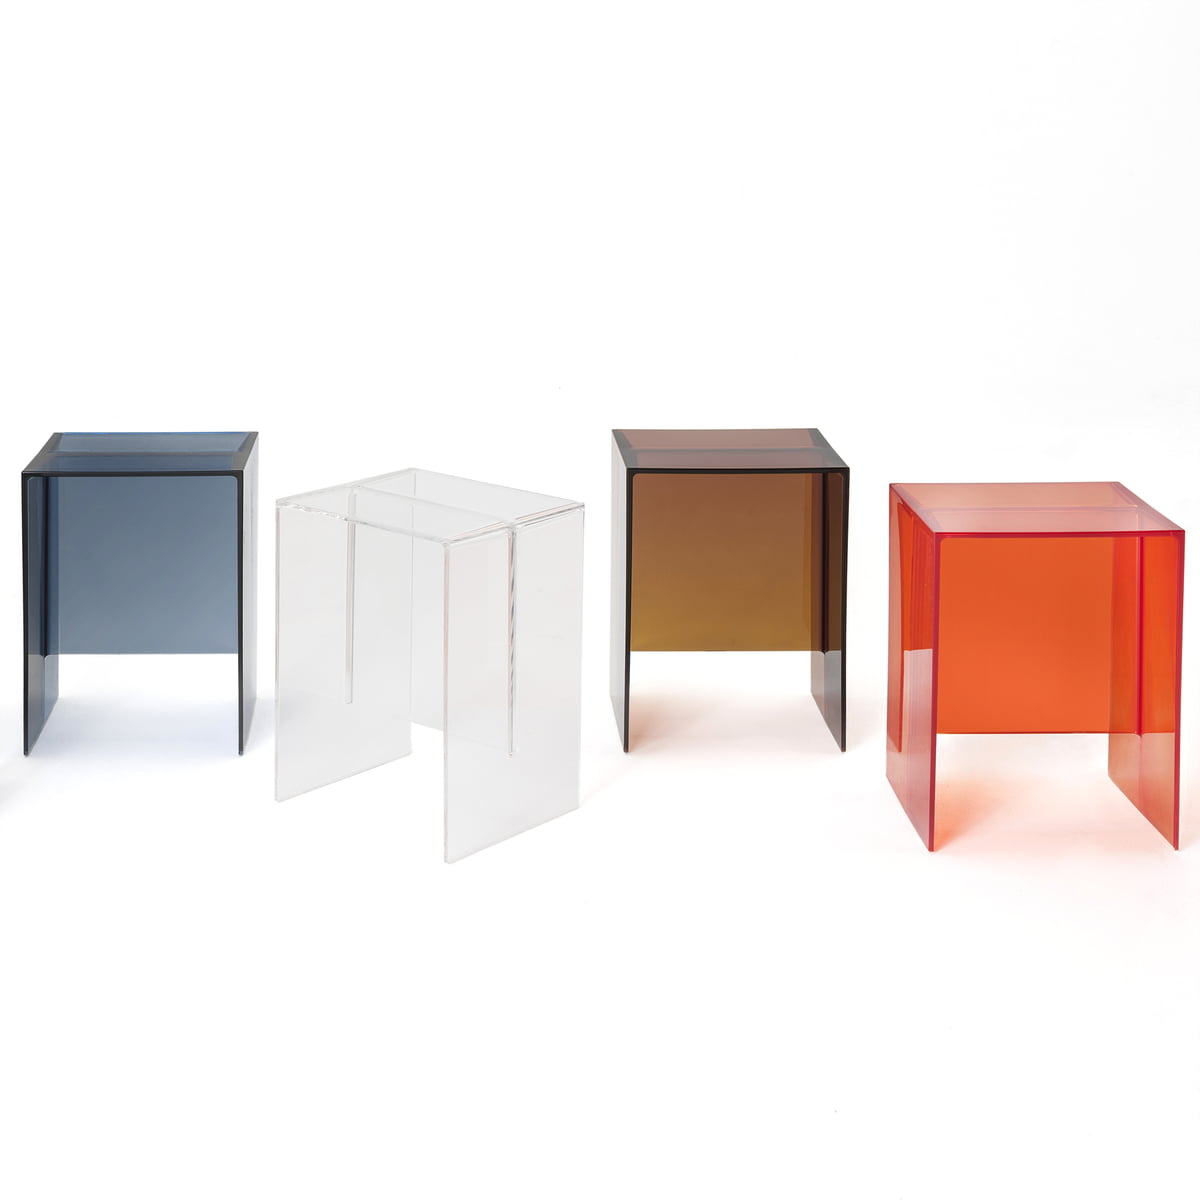 the maxbeam stool and side table by kartell - kartell  maxbeam stool  side table